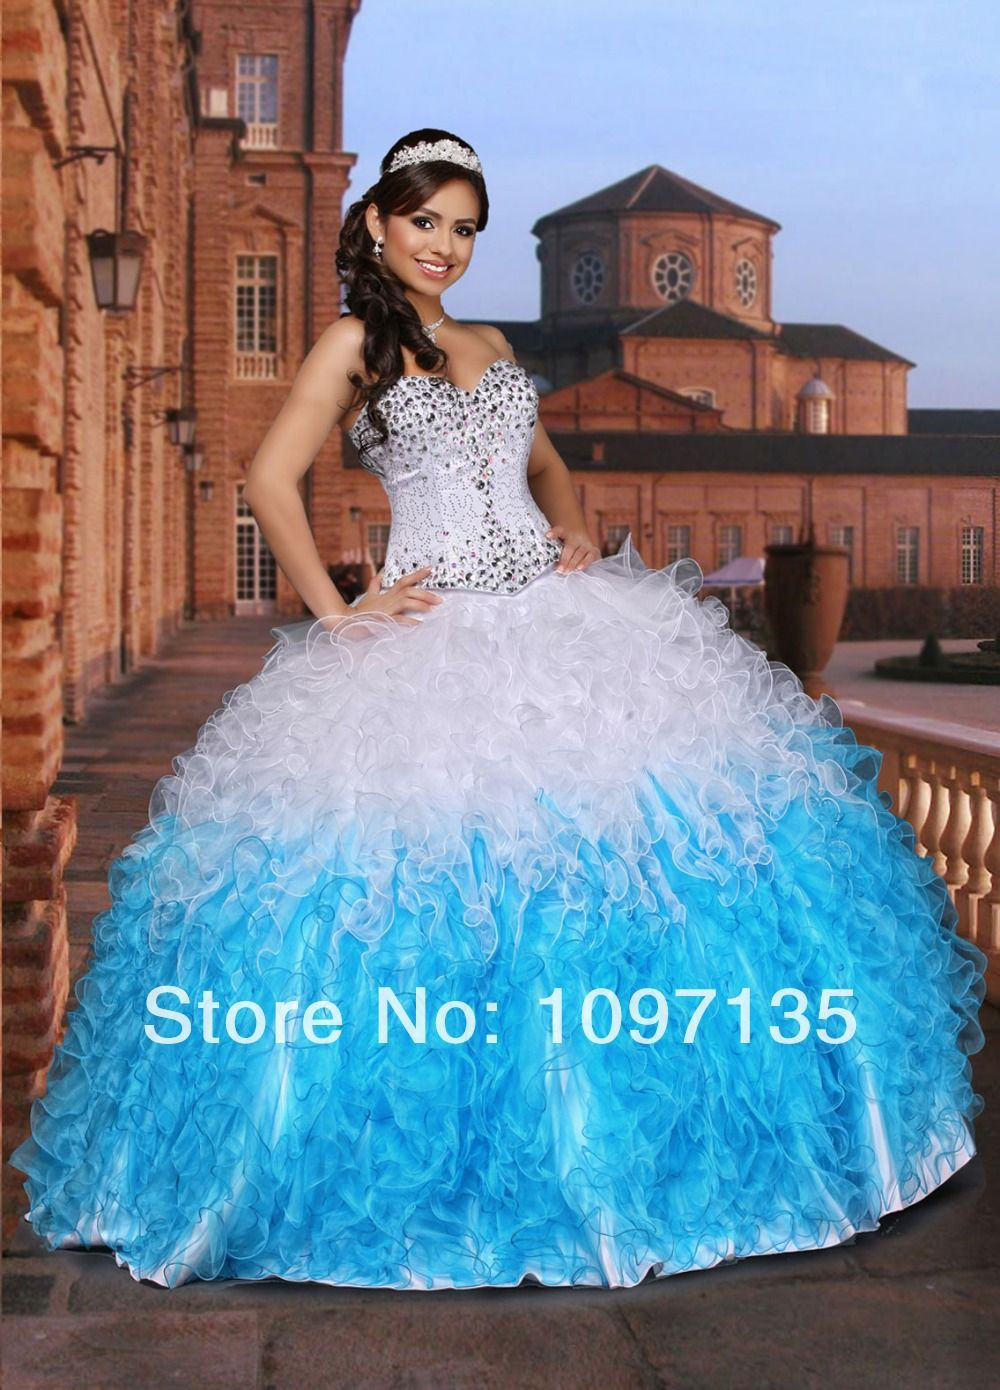 Unique Quinceanera Dresses 2014 vestidos de 15 Ball Gown ...